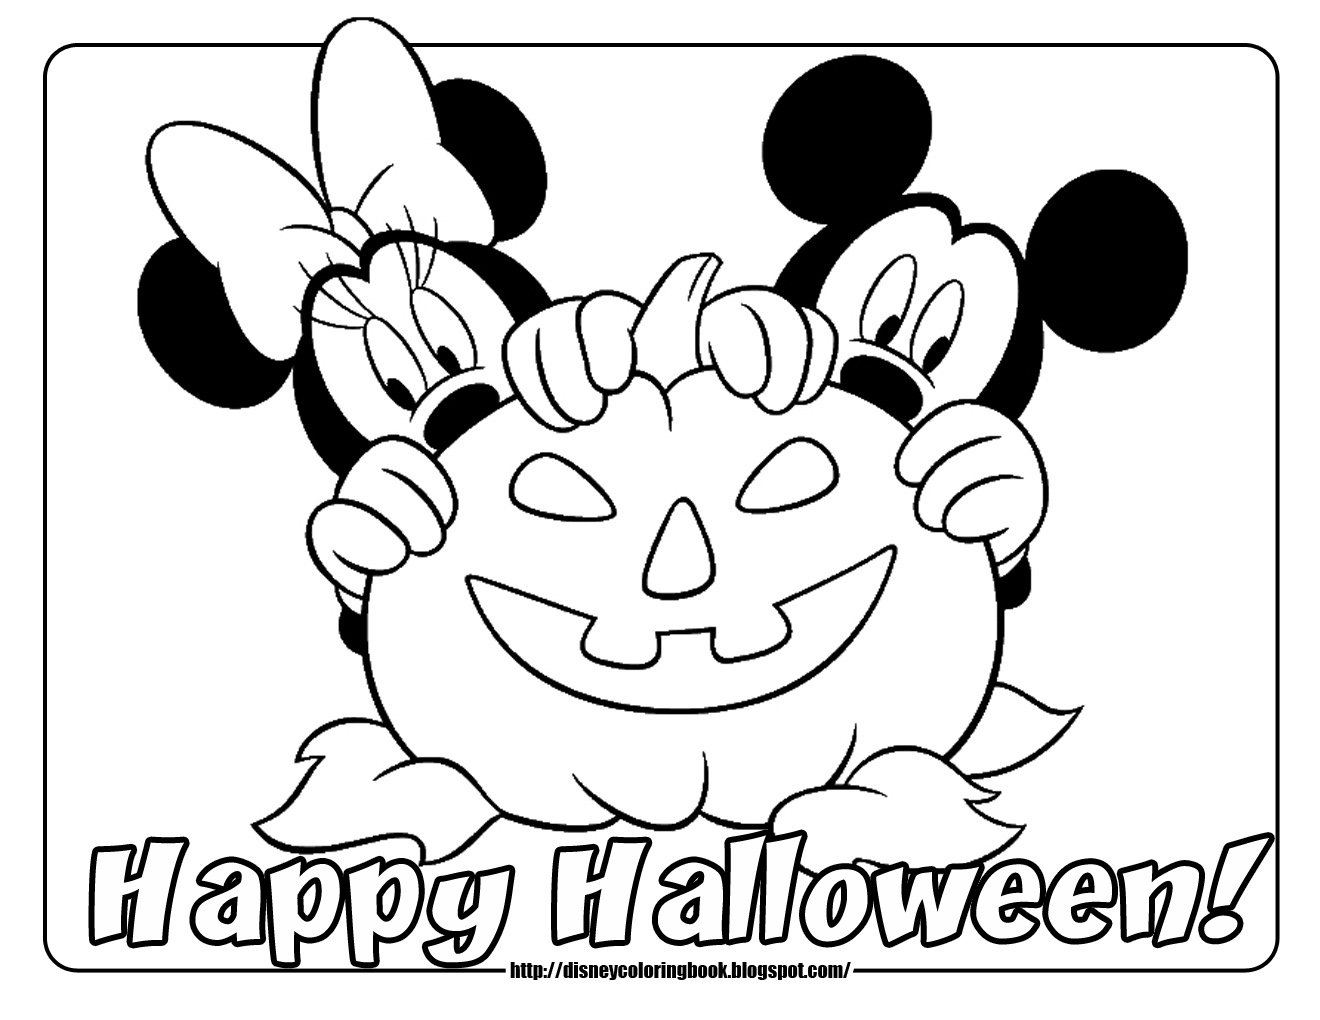 1320x1020 For Minnie Mouse Halloween Coloring Pages